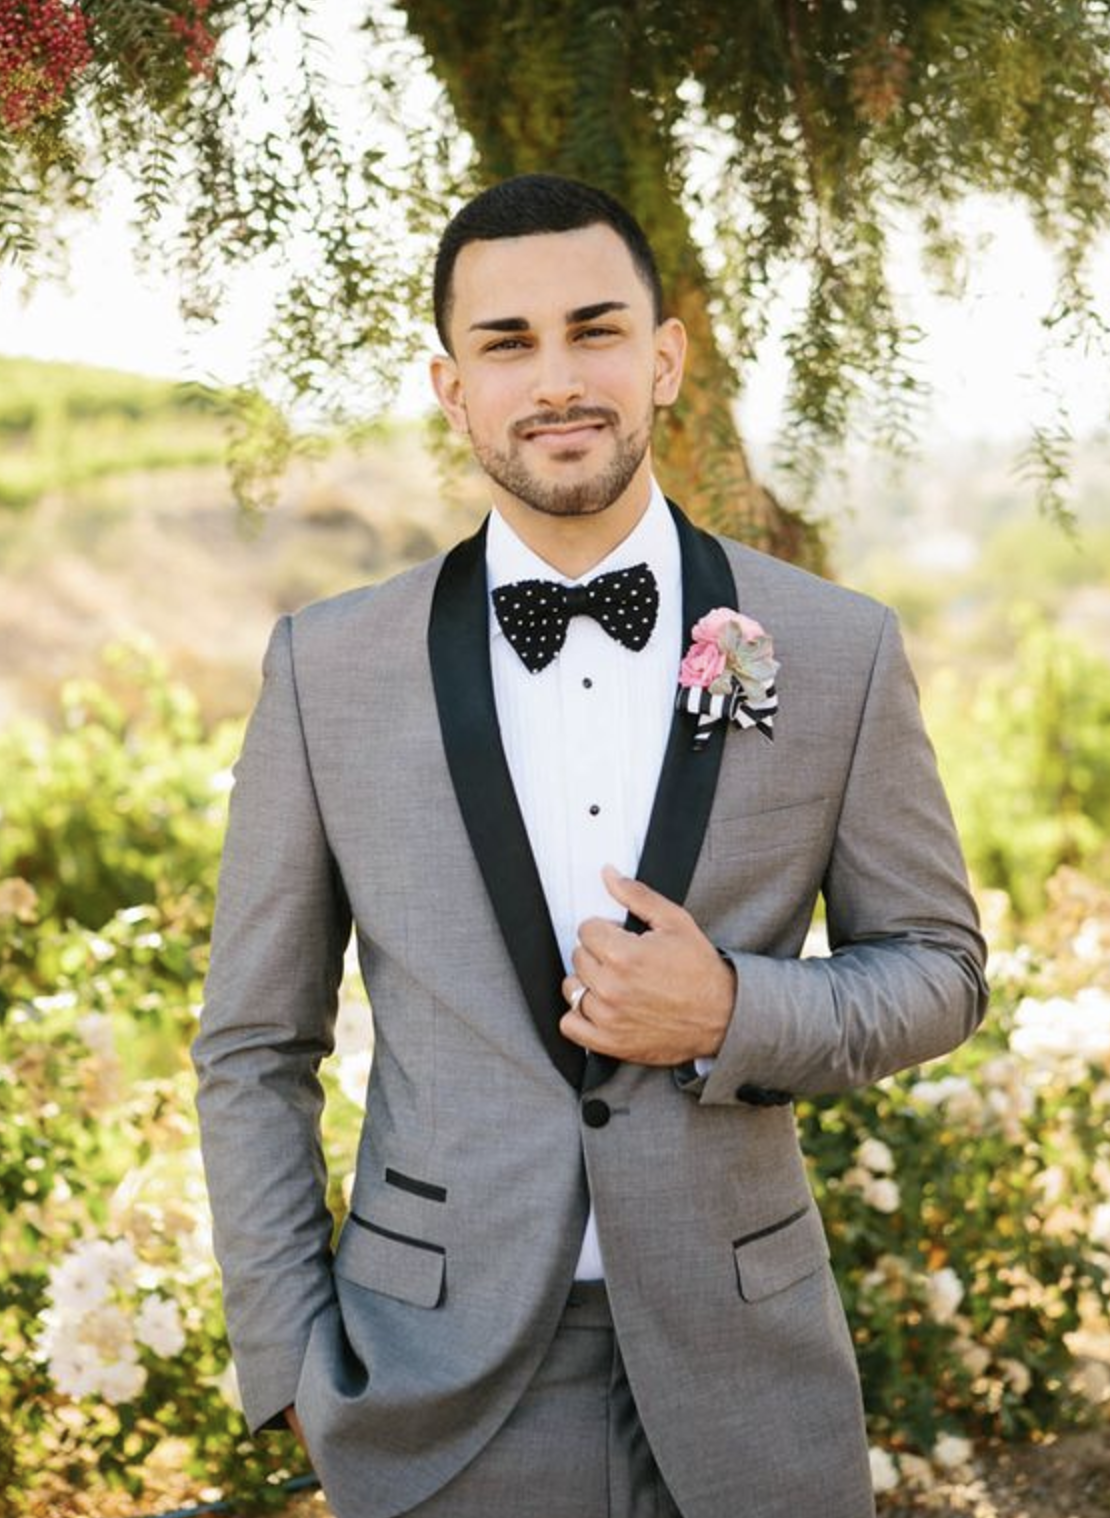 12 summer wedding suit ideas for grooms in 2018 | Wedding Day ...